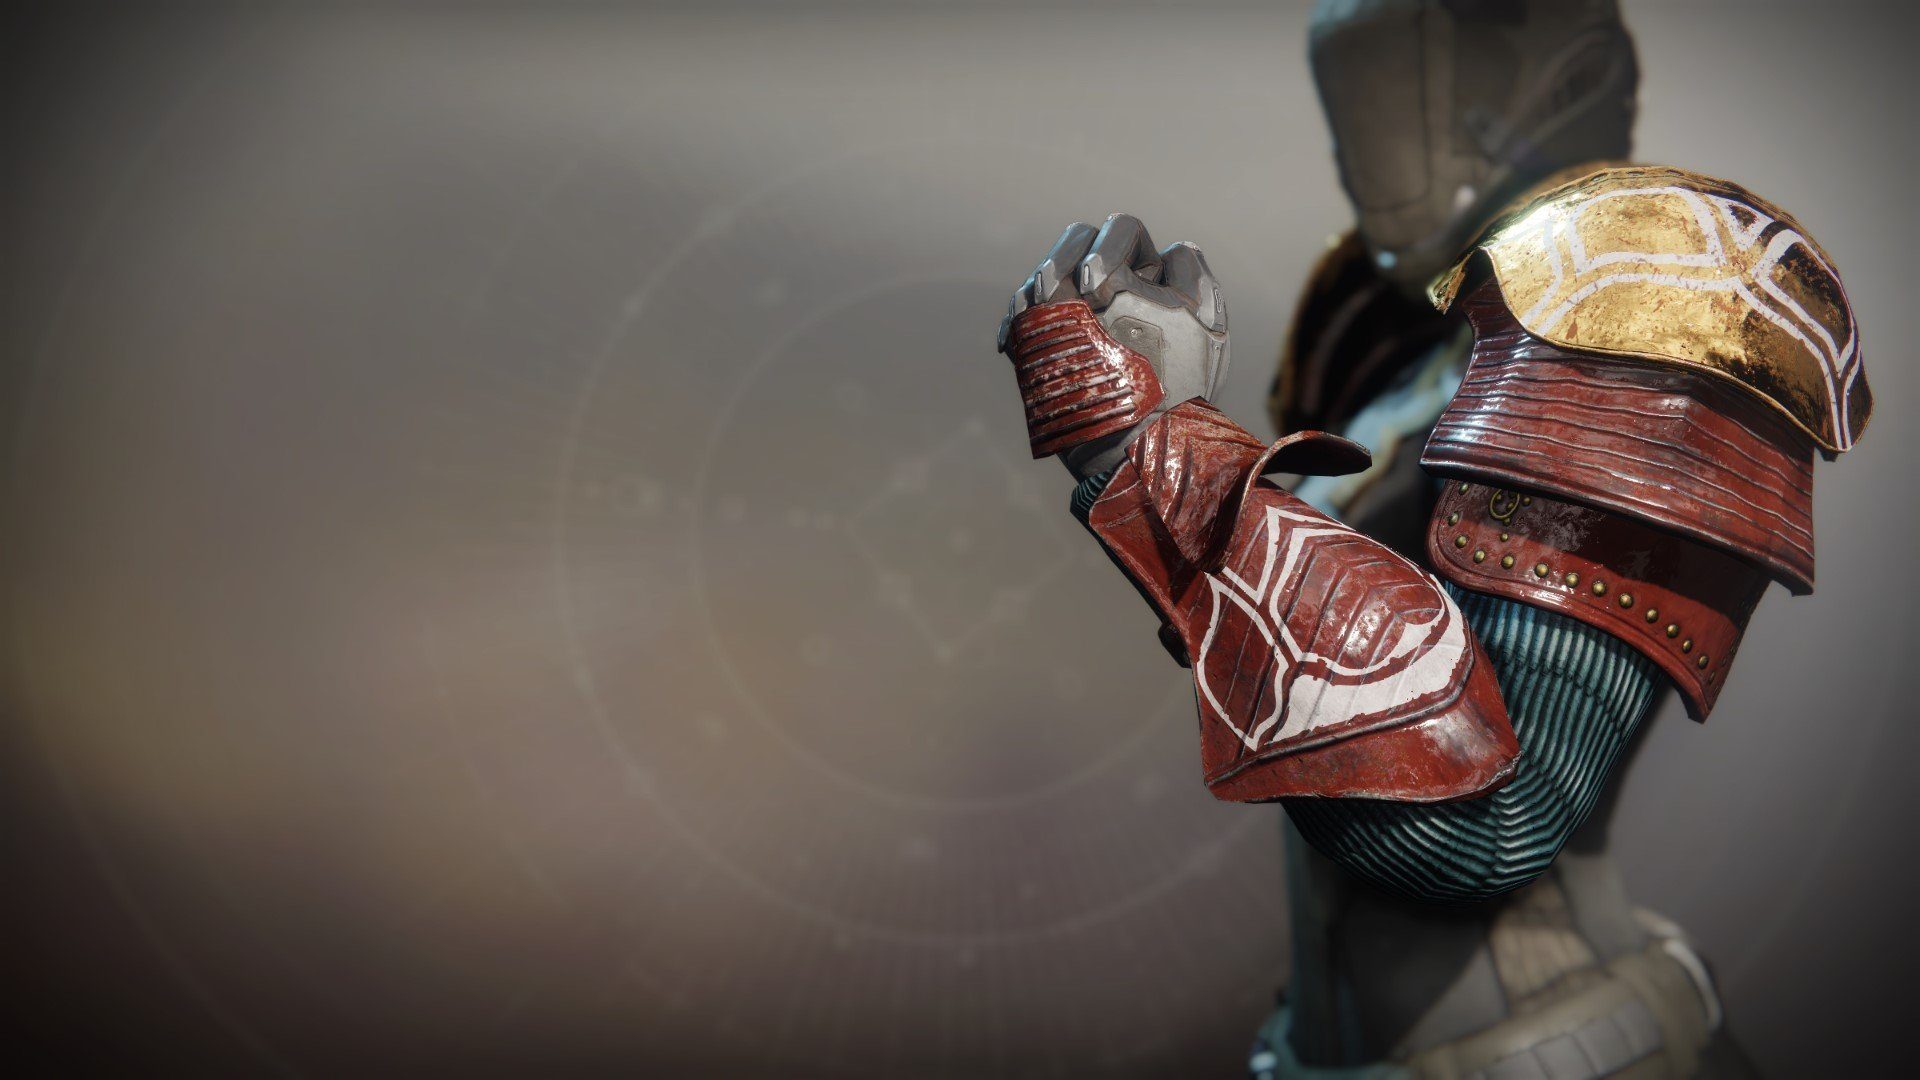 An in-game render of the Iron Remembrance Gauntlets.